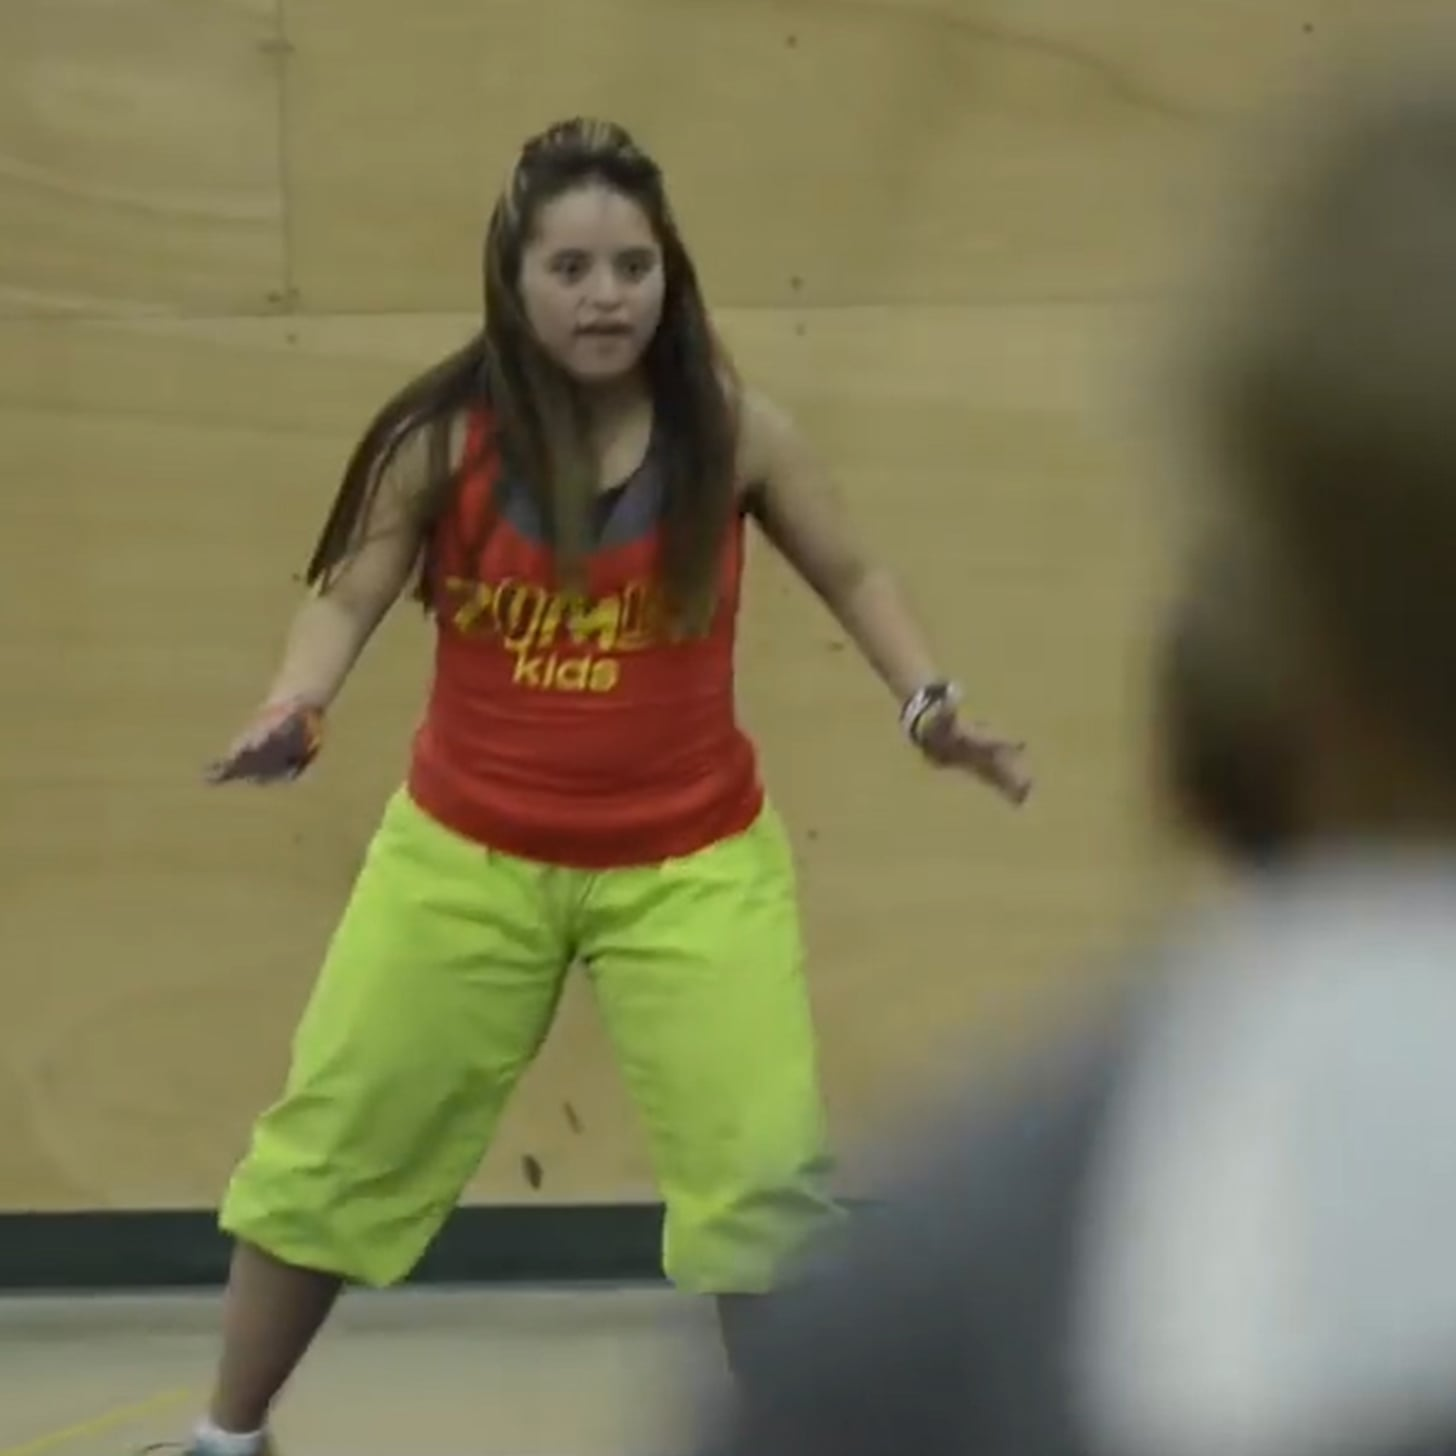 w down syndrome becomes zumba teacher video popsugar w down syndrome becomes zumba teacher video fitness